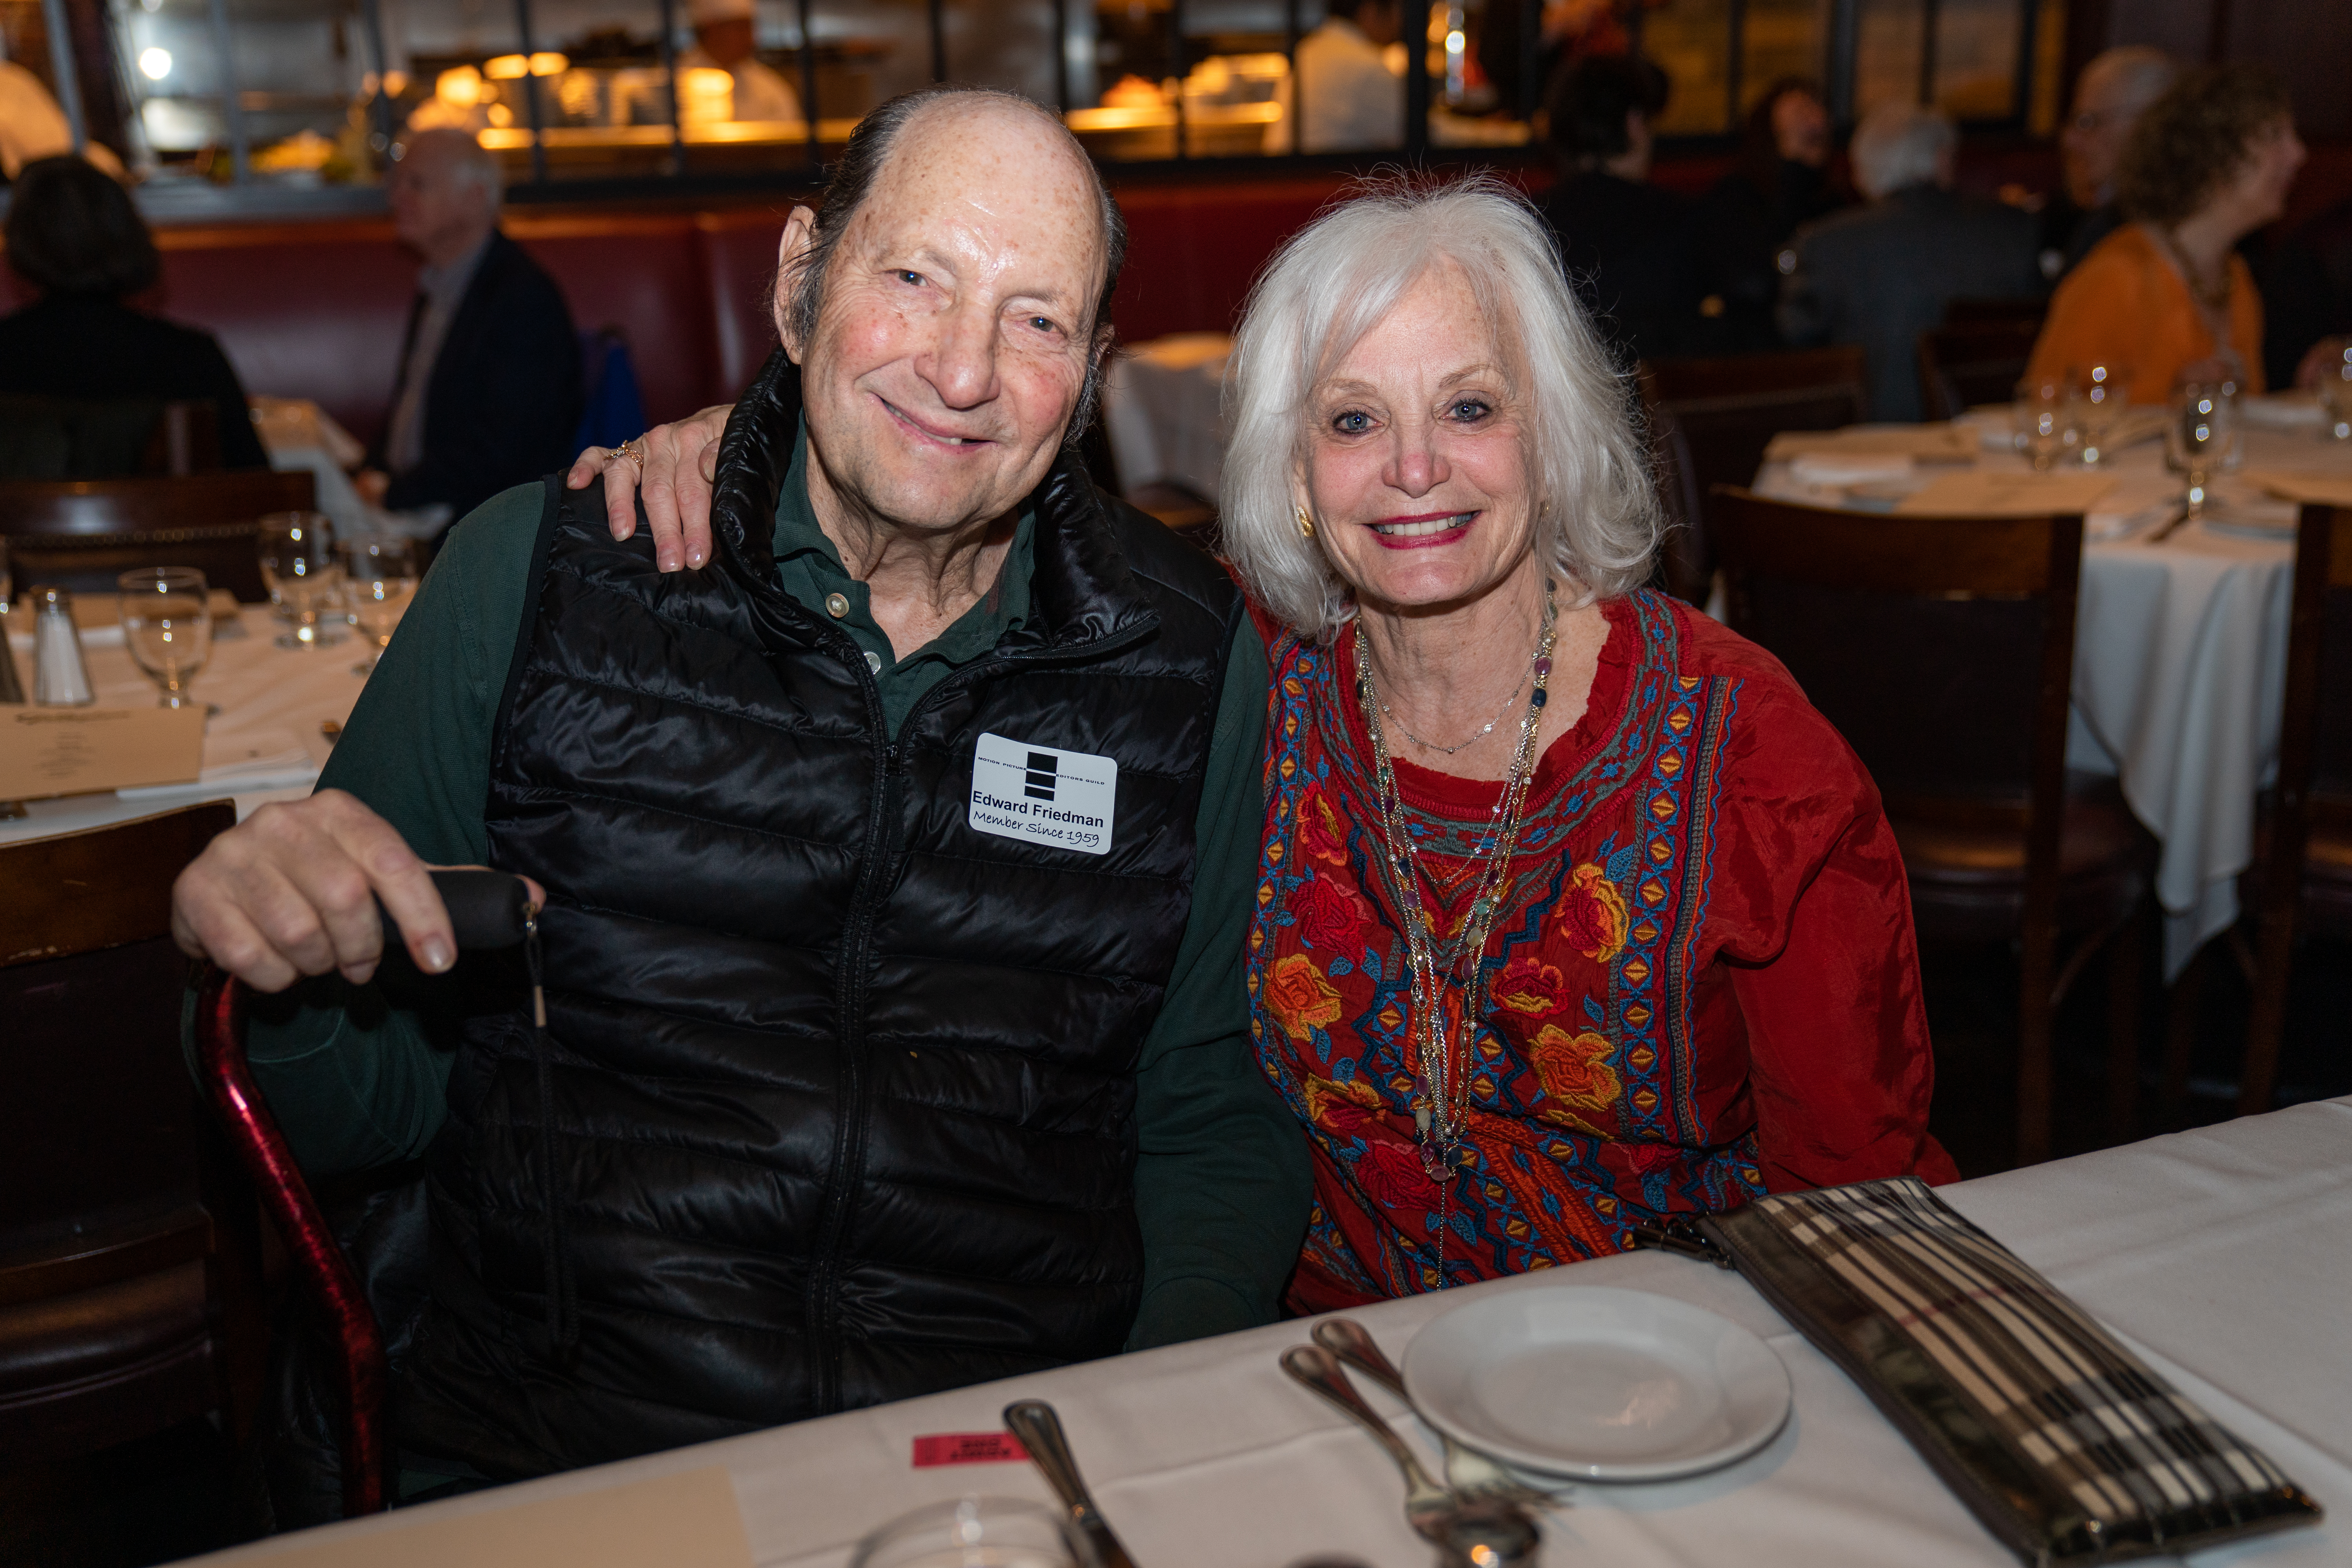 Ed and Eileen Friedman